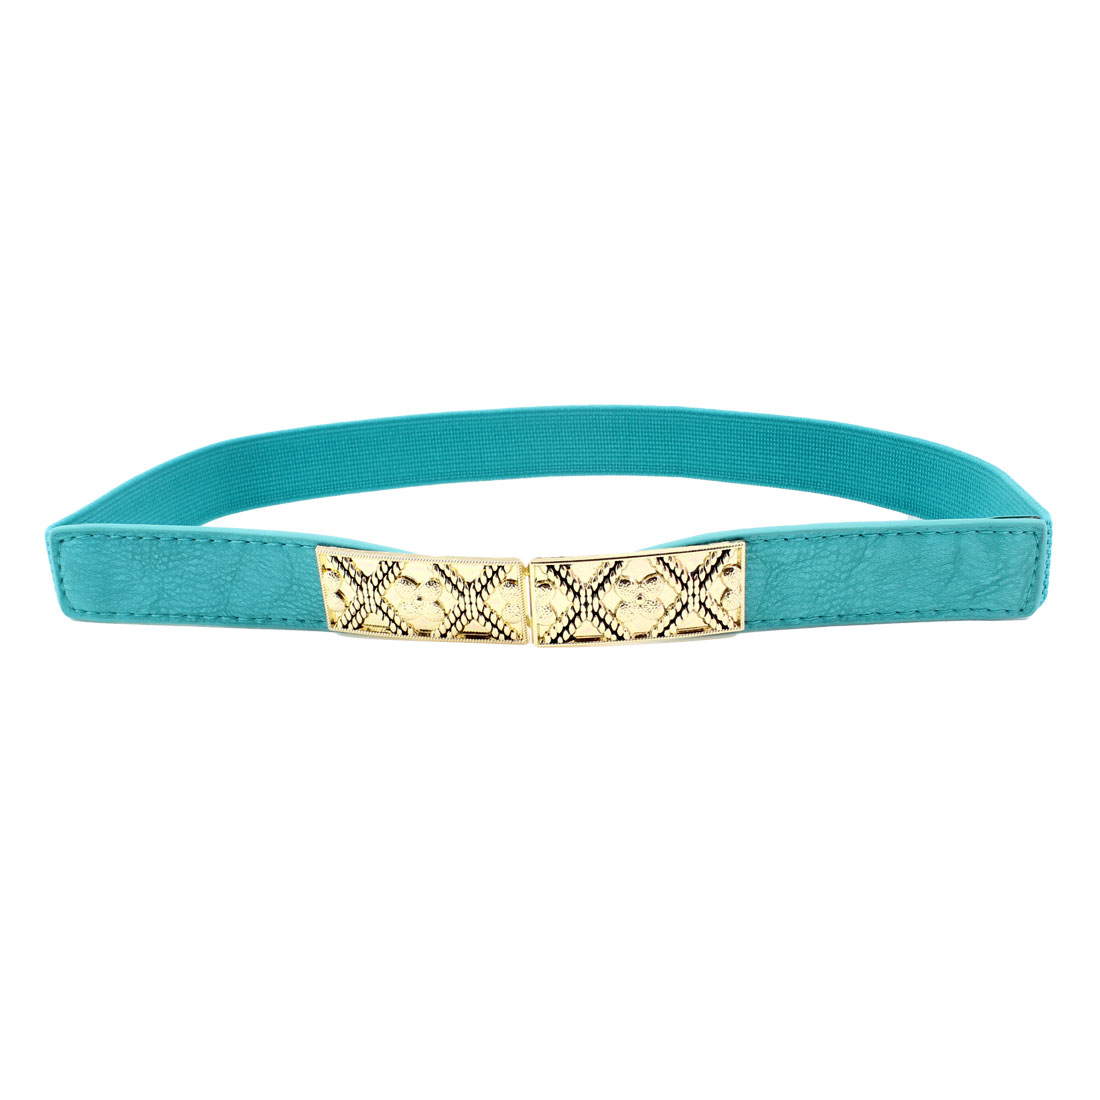 Faux Leather Elastic Fabric Interlock Buckle Waist Cinch Belt Teal Blue for Lady